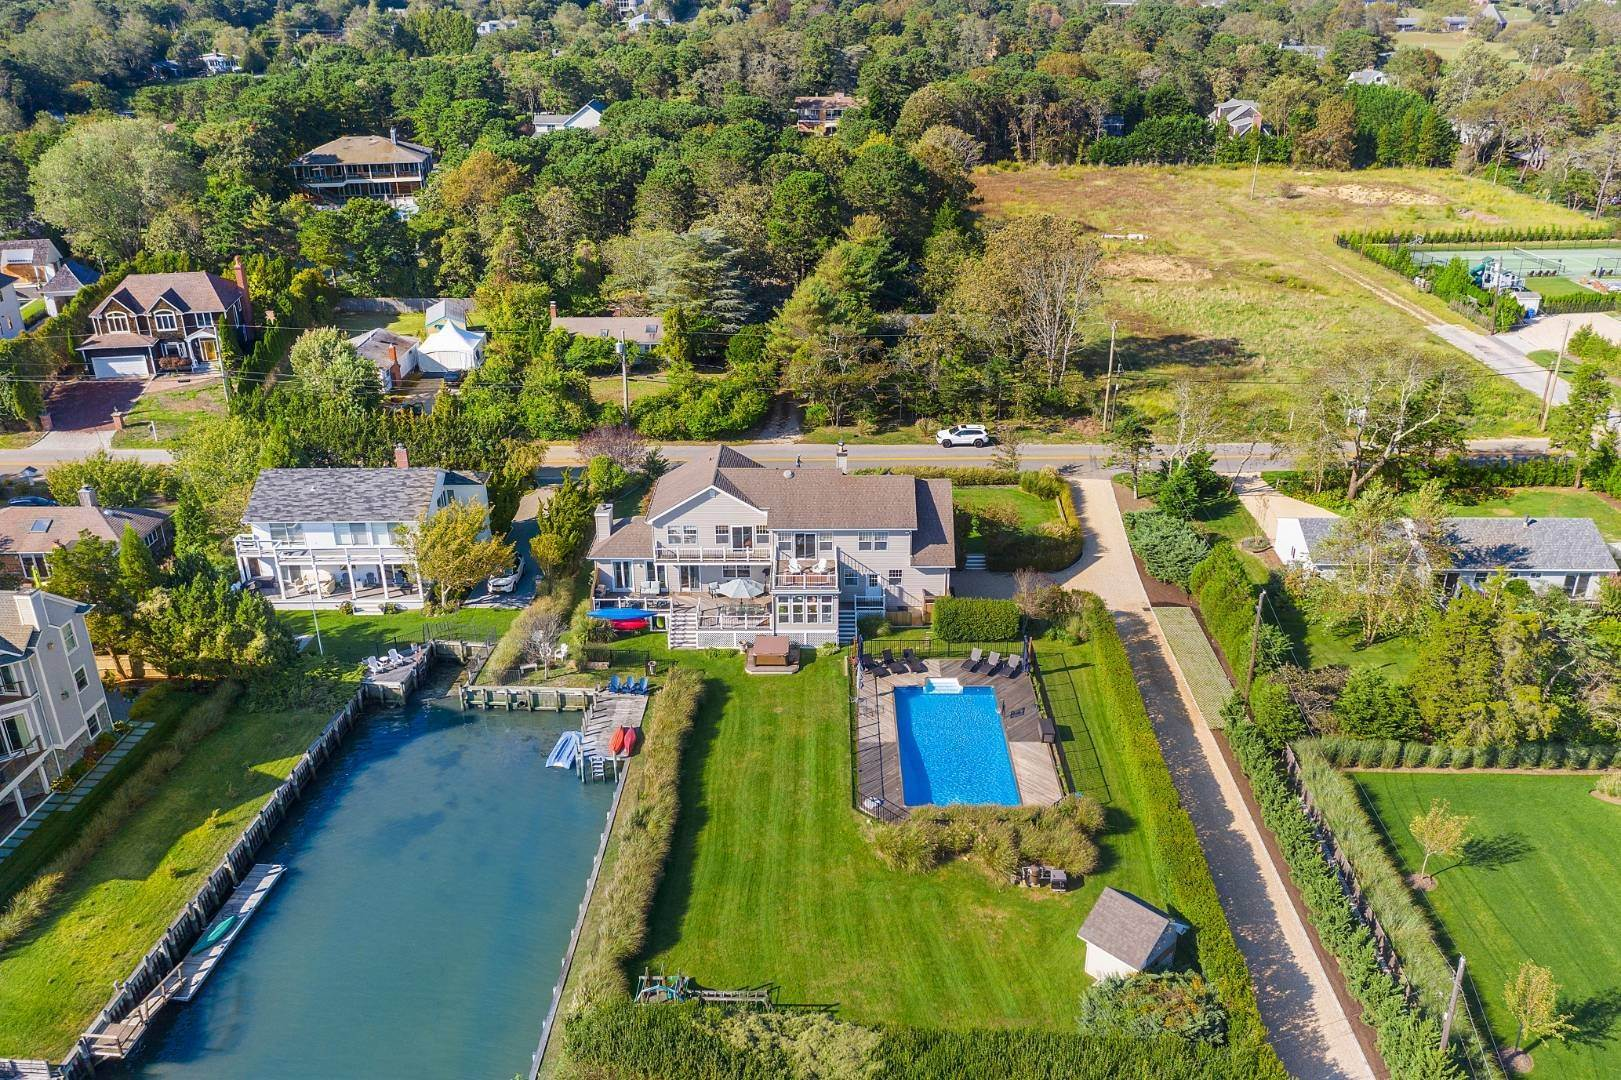 Single Family Home for Sale at Southampton Waterfront With Pool And Bulkhead 56 Middle Pond Road, Southampton, NY 11968